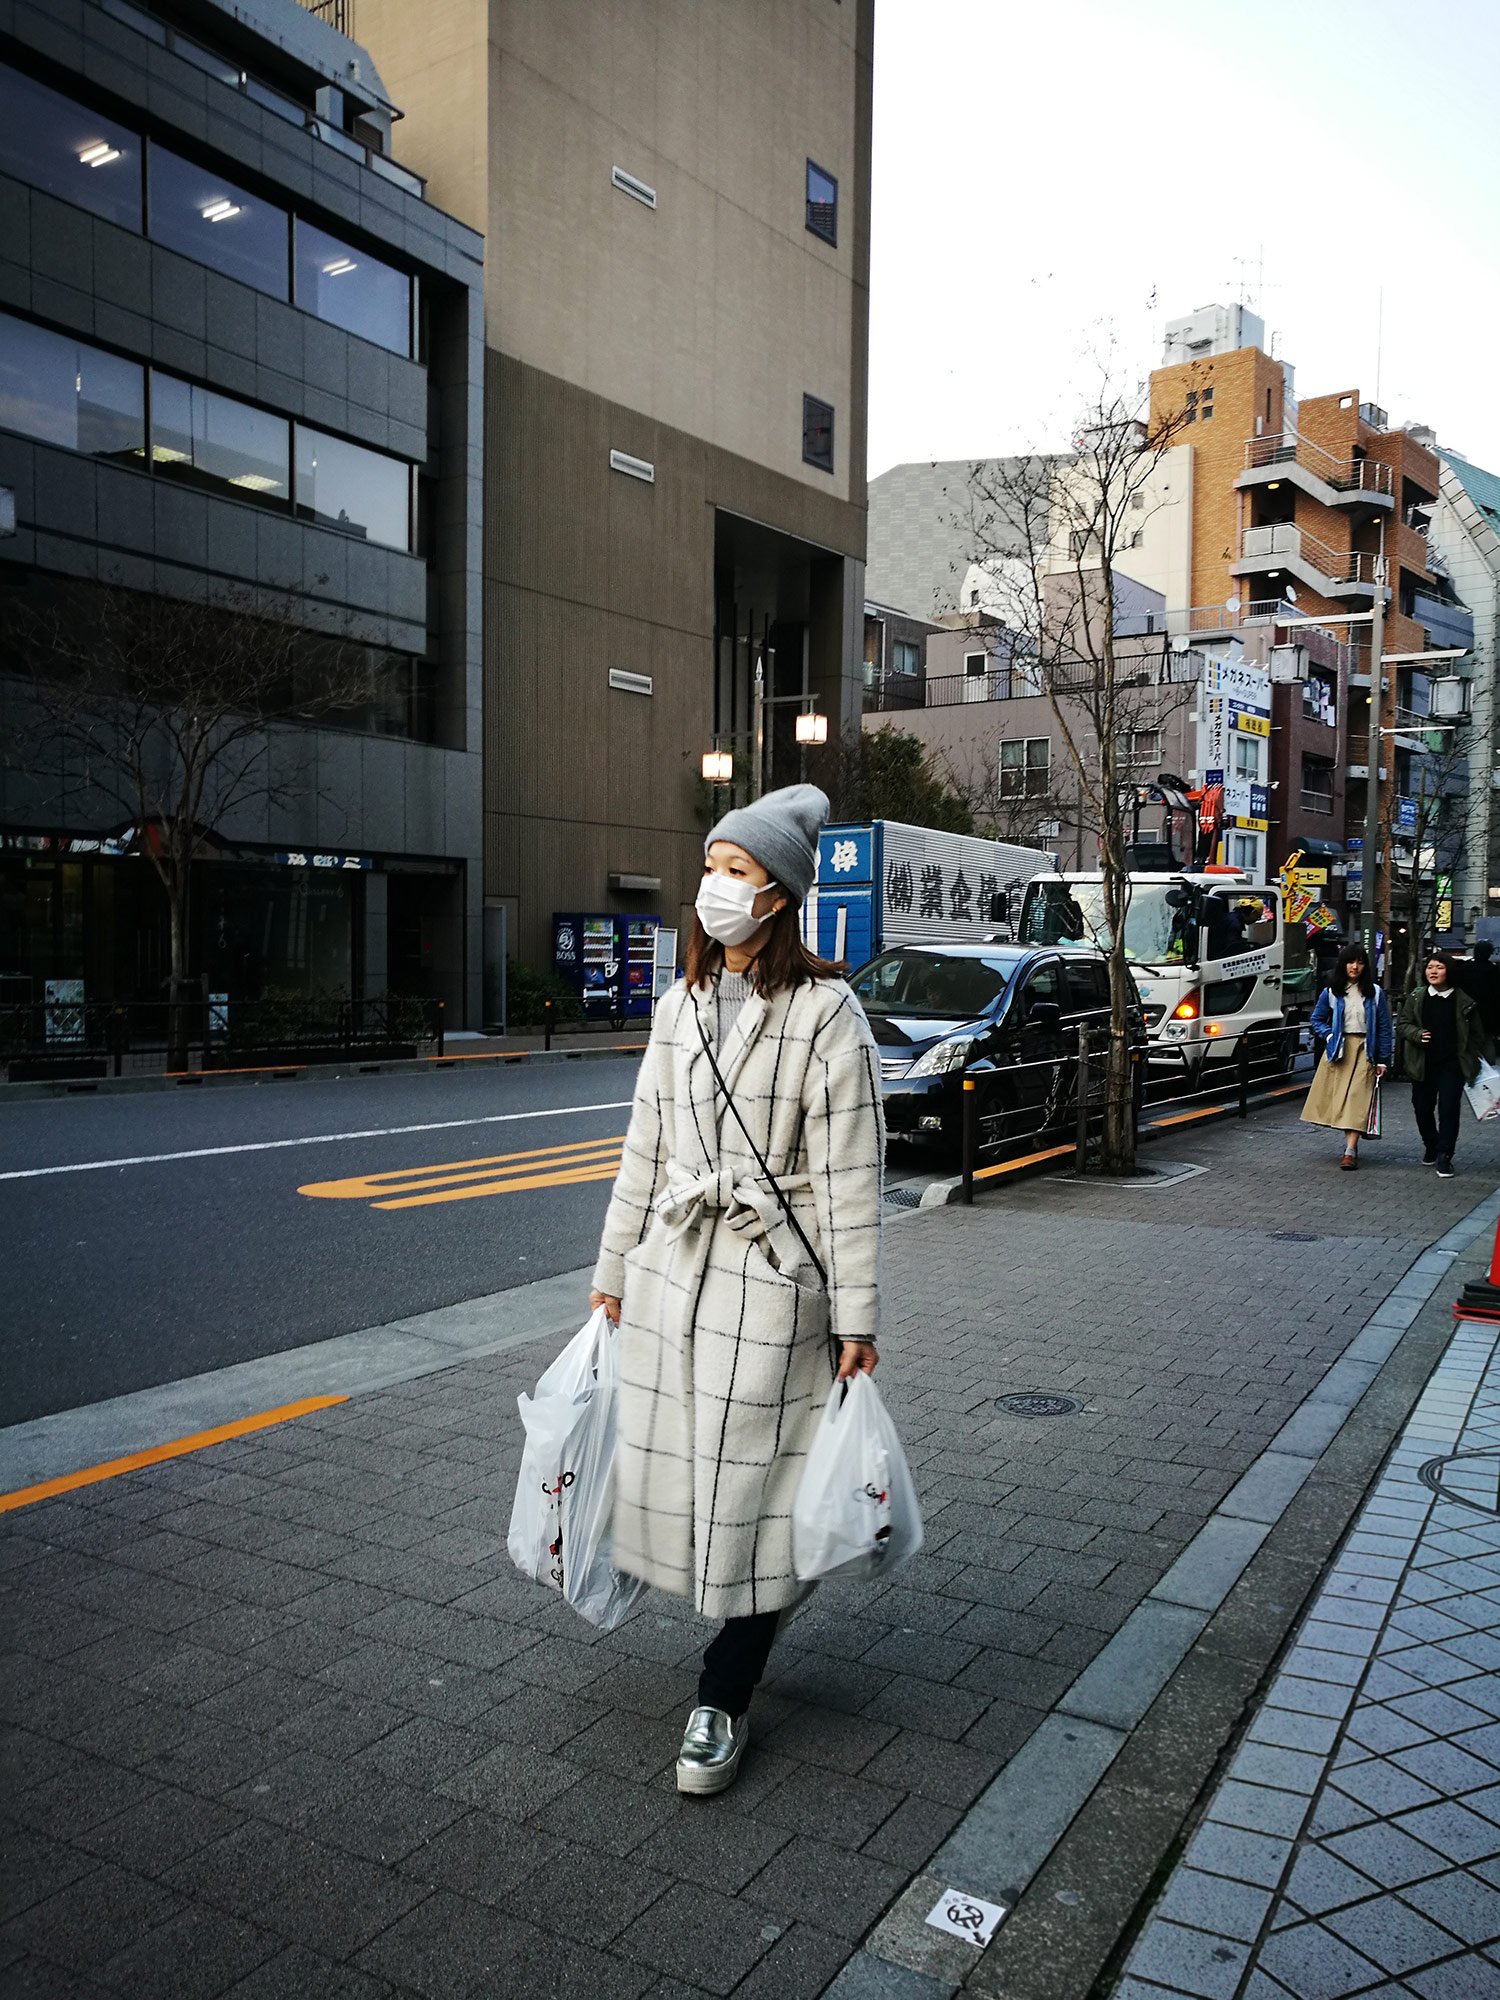 On the street: Tokyo by Sheila Velasco